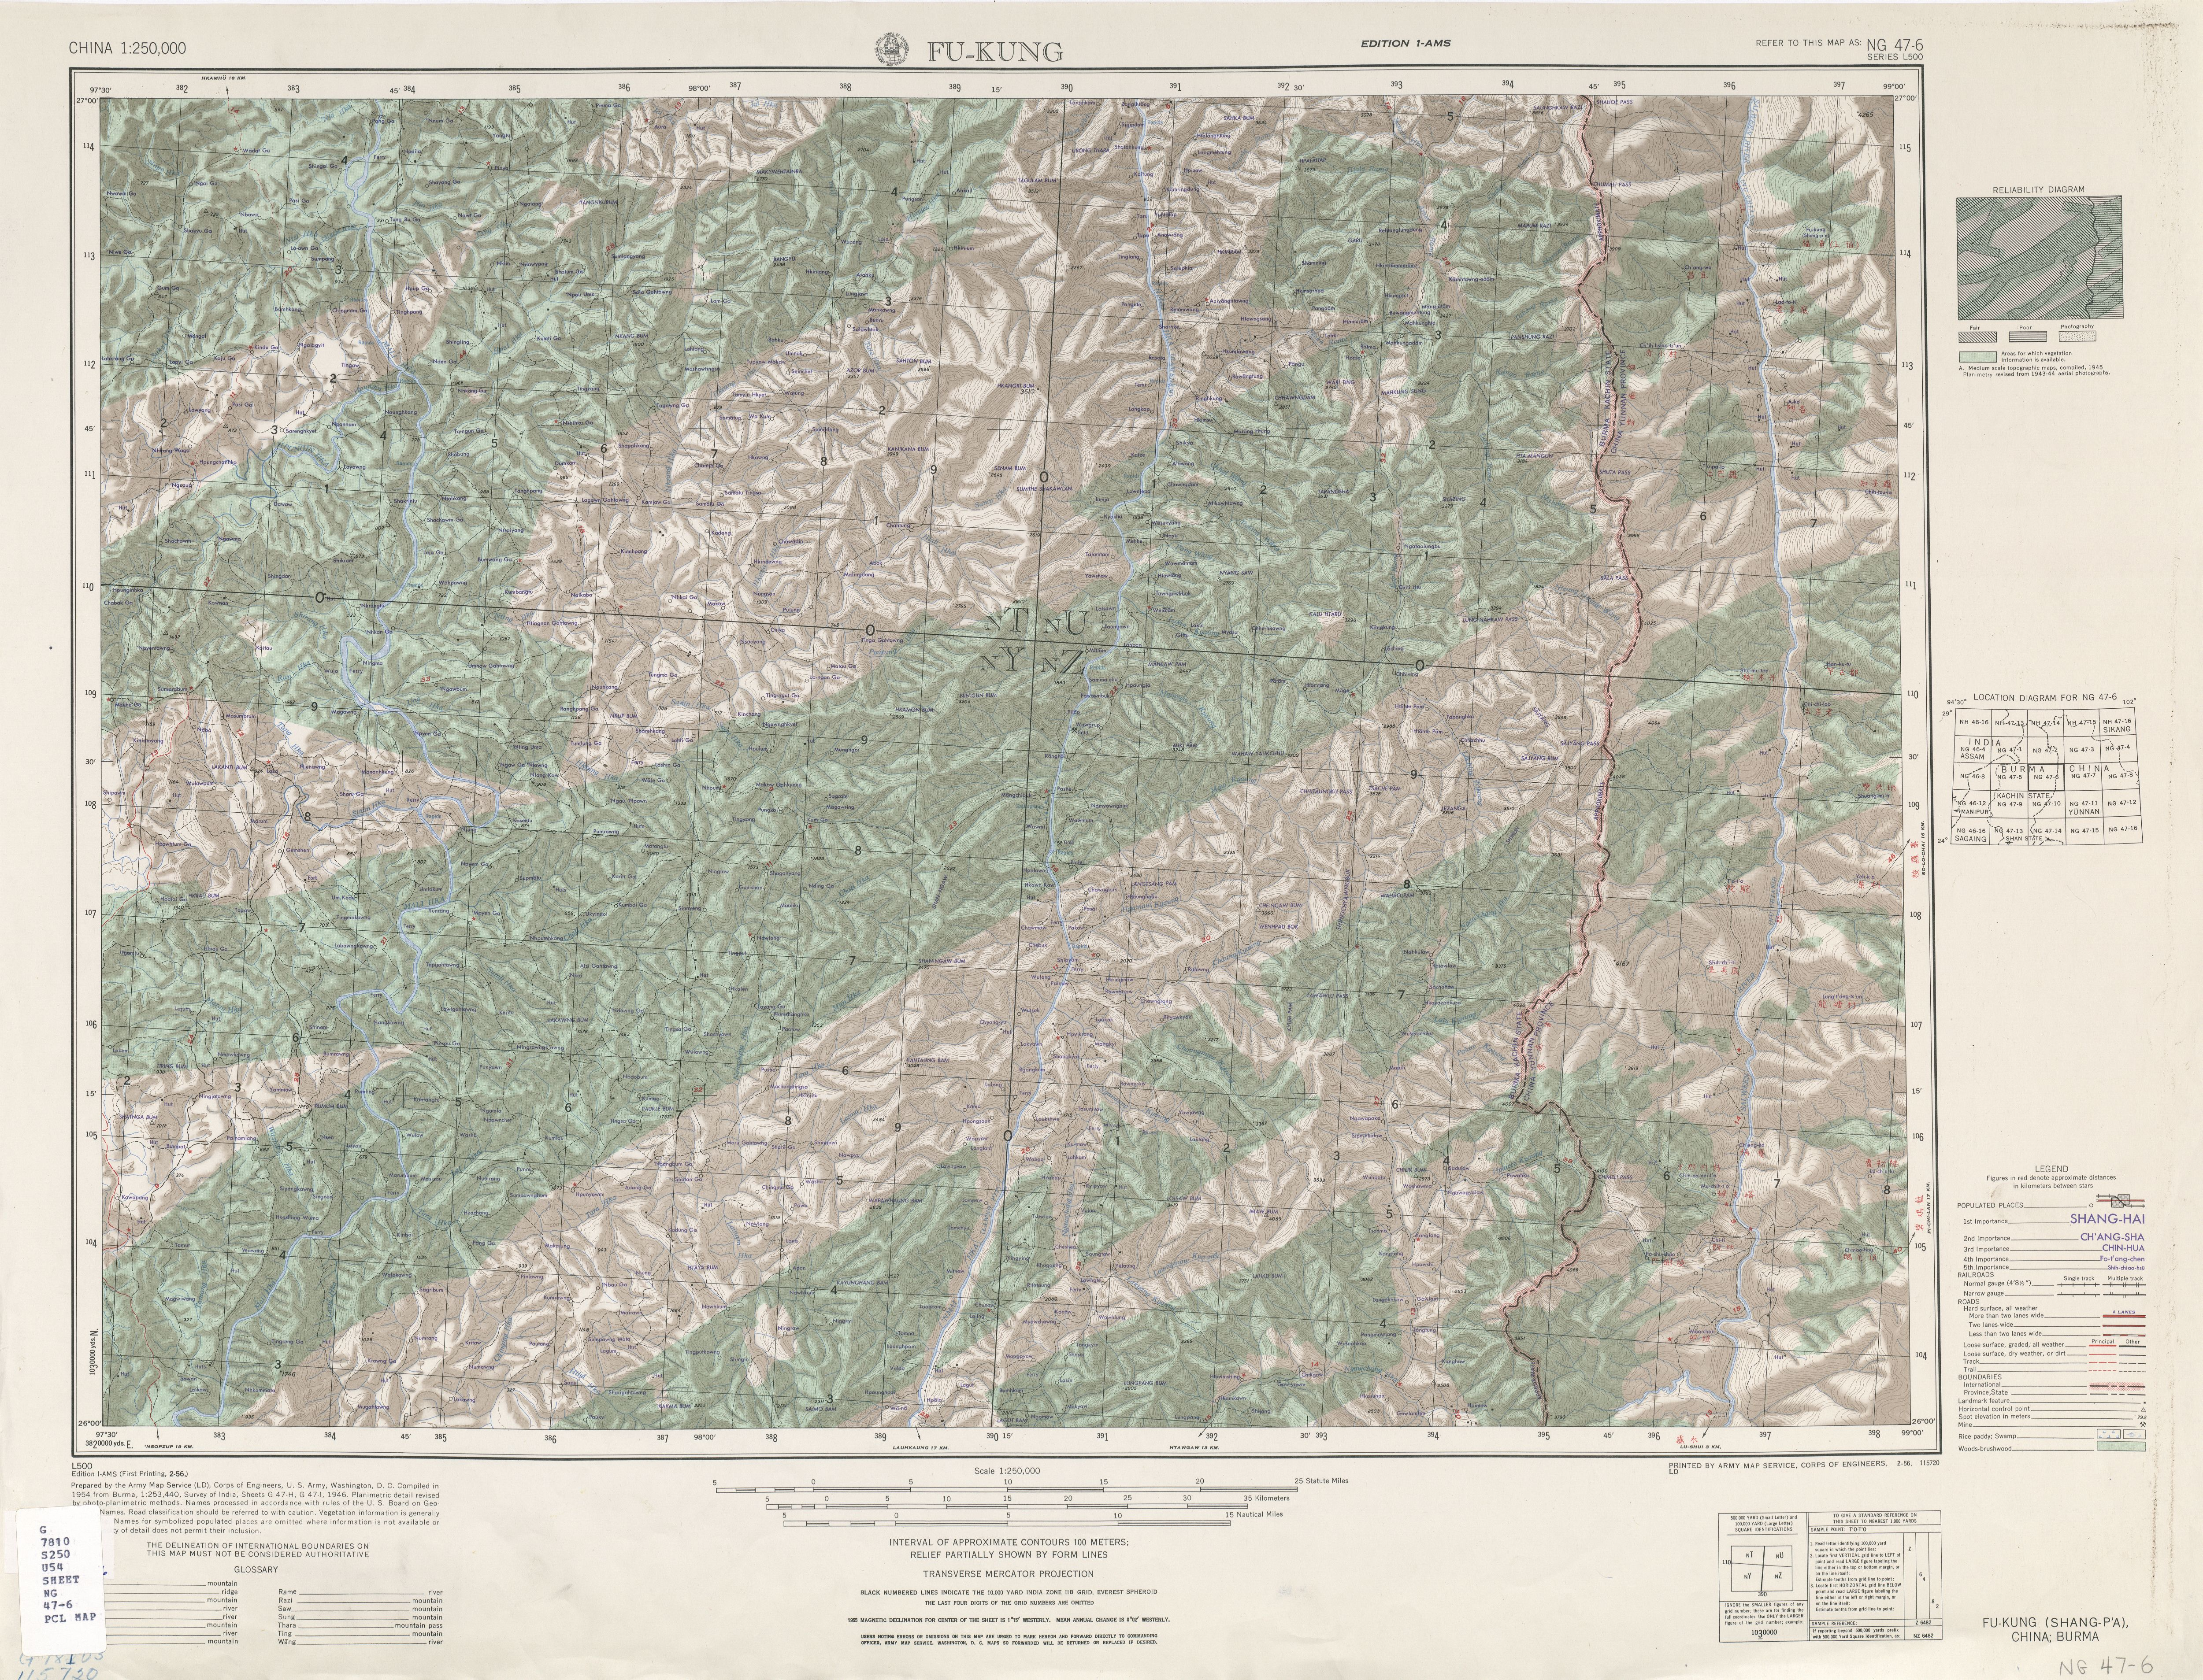 China Ams Topographic Maps Perry Castaneda Map Collection Ut